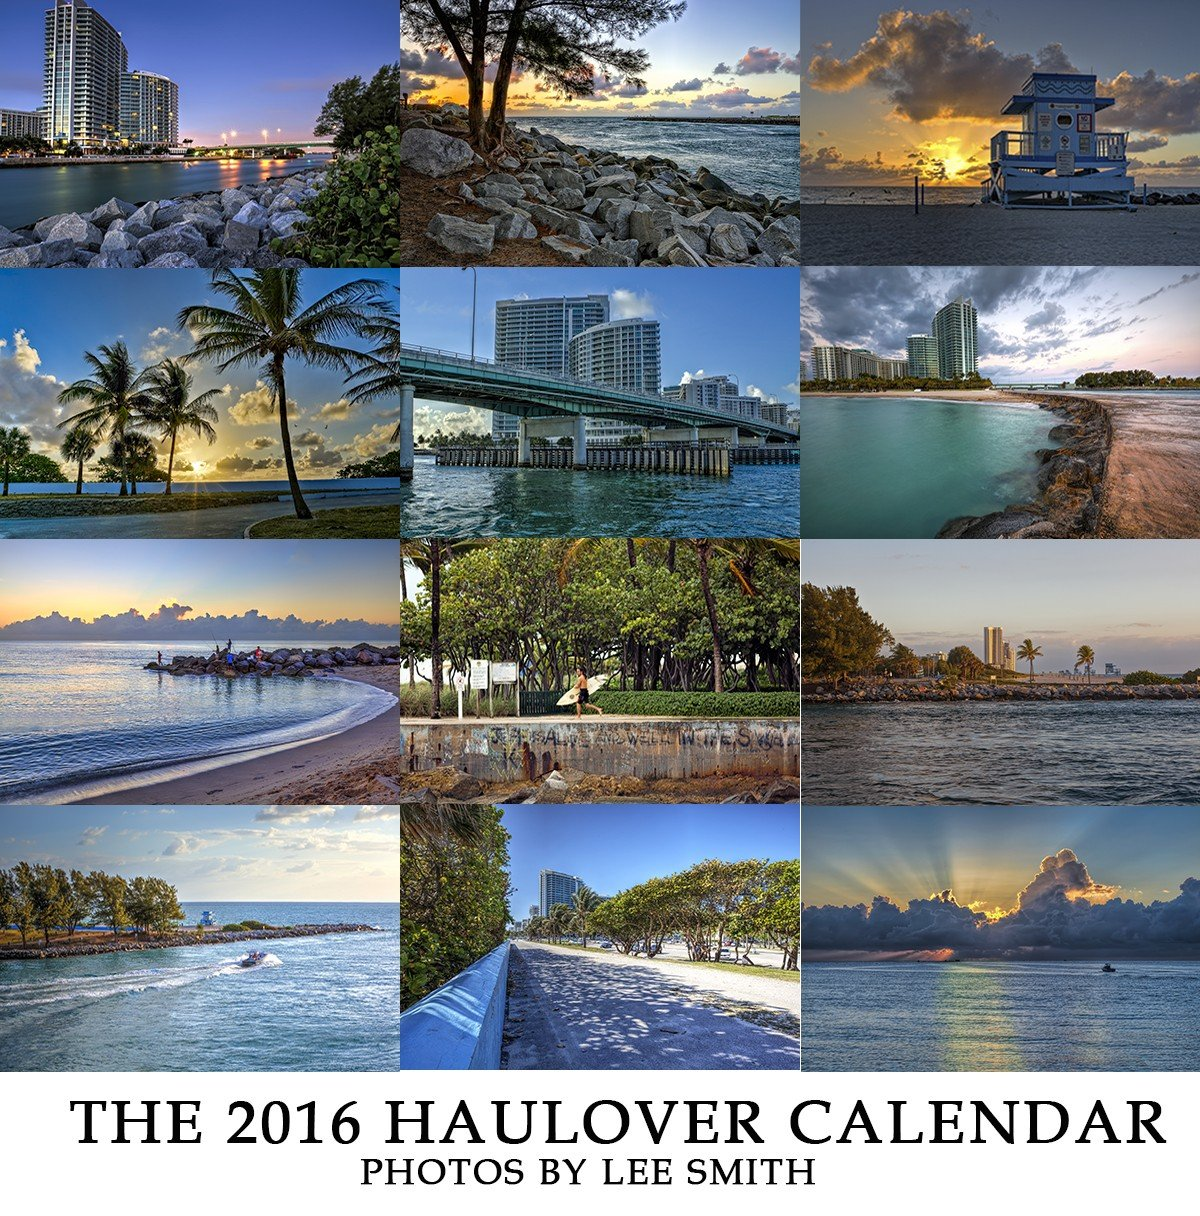 2016 Holiday Calendar